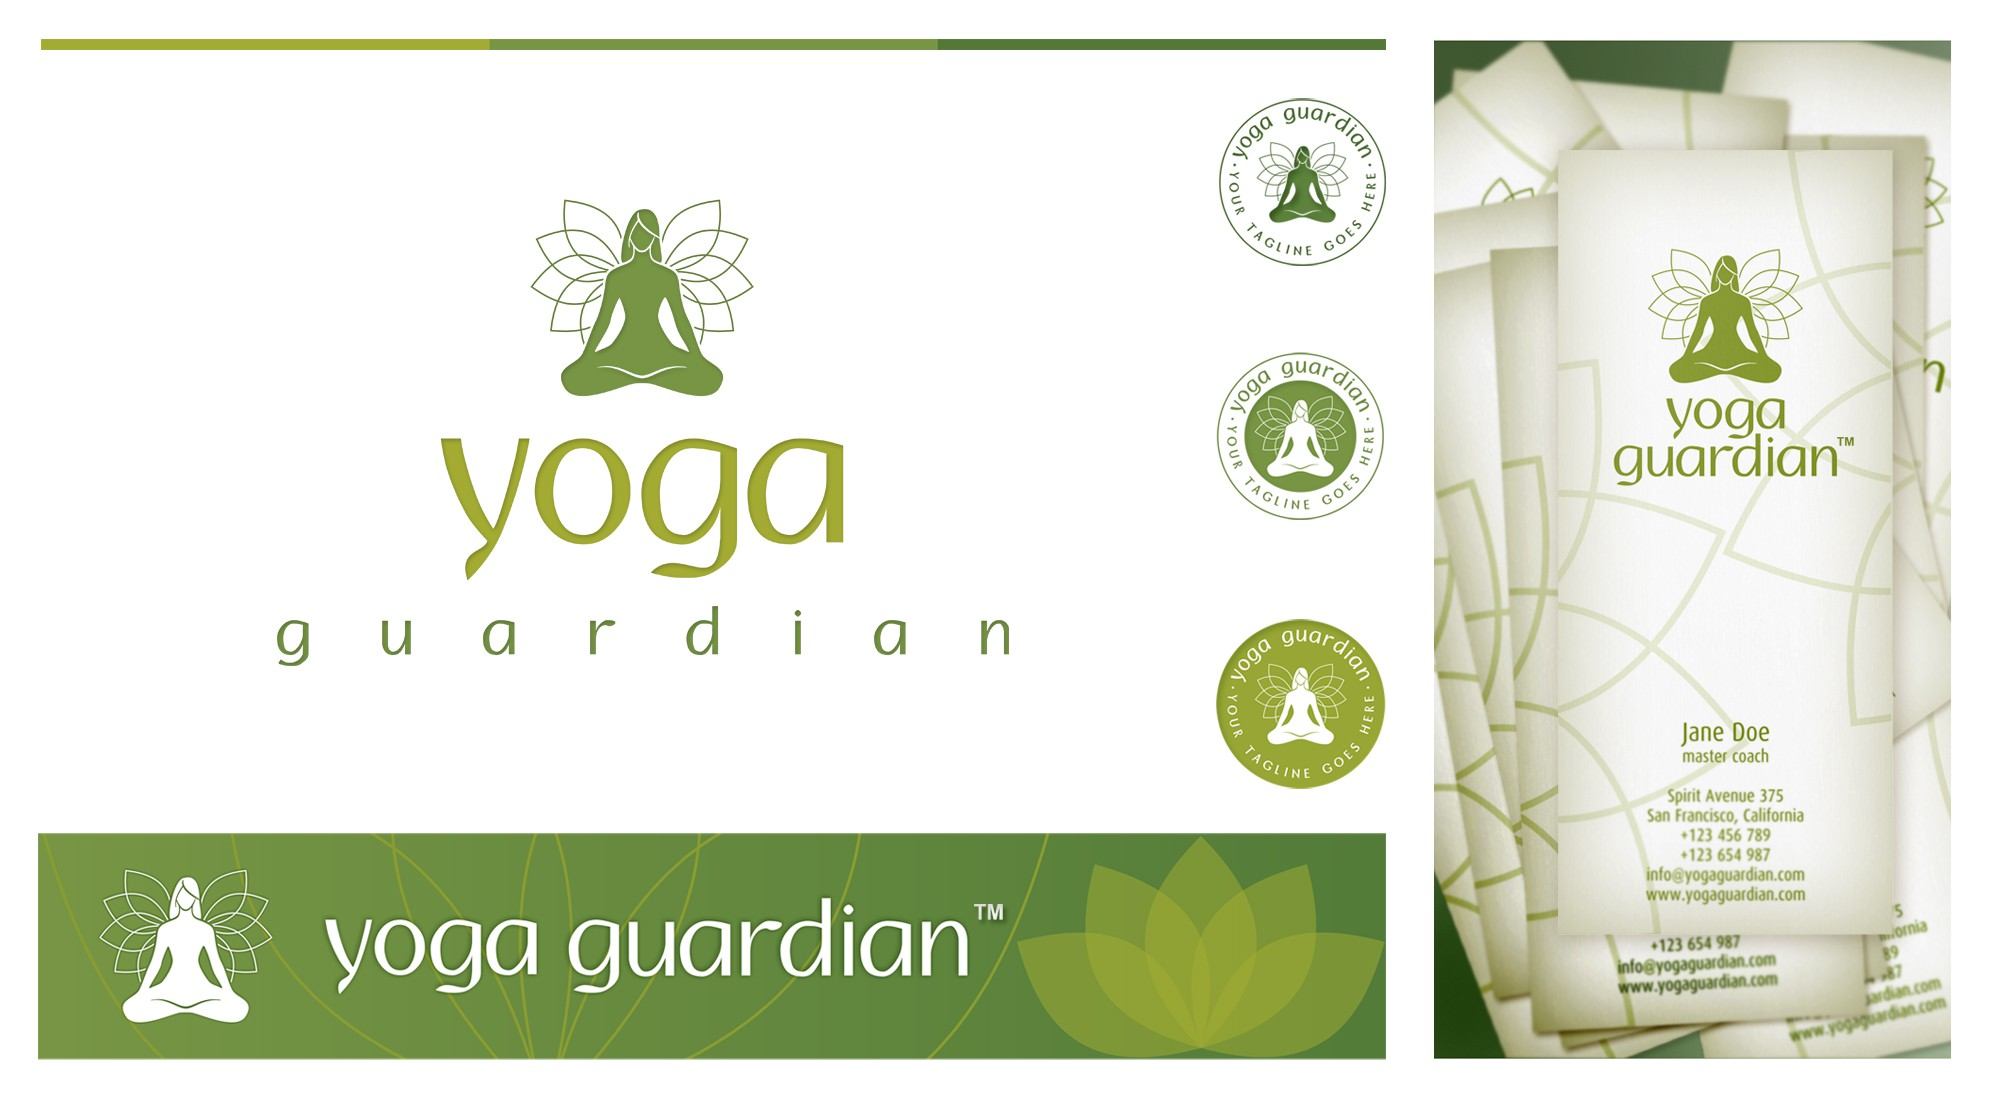 Help Yoga Guardian with a new logo